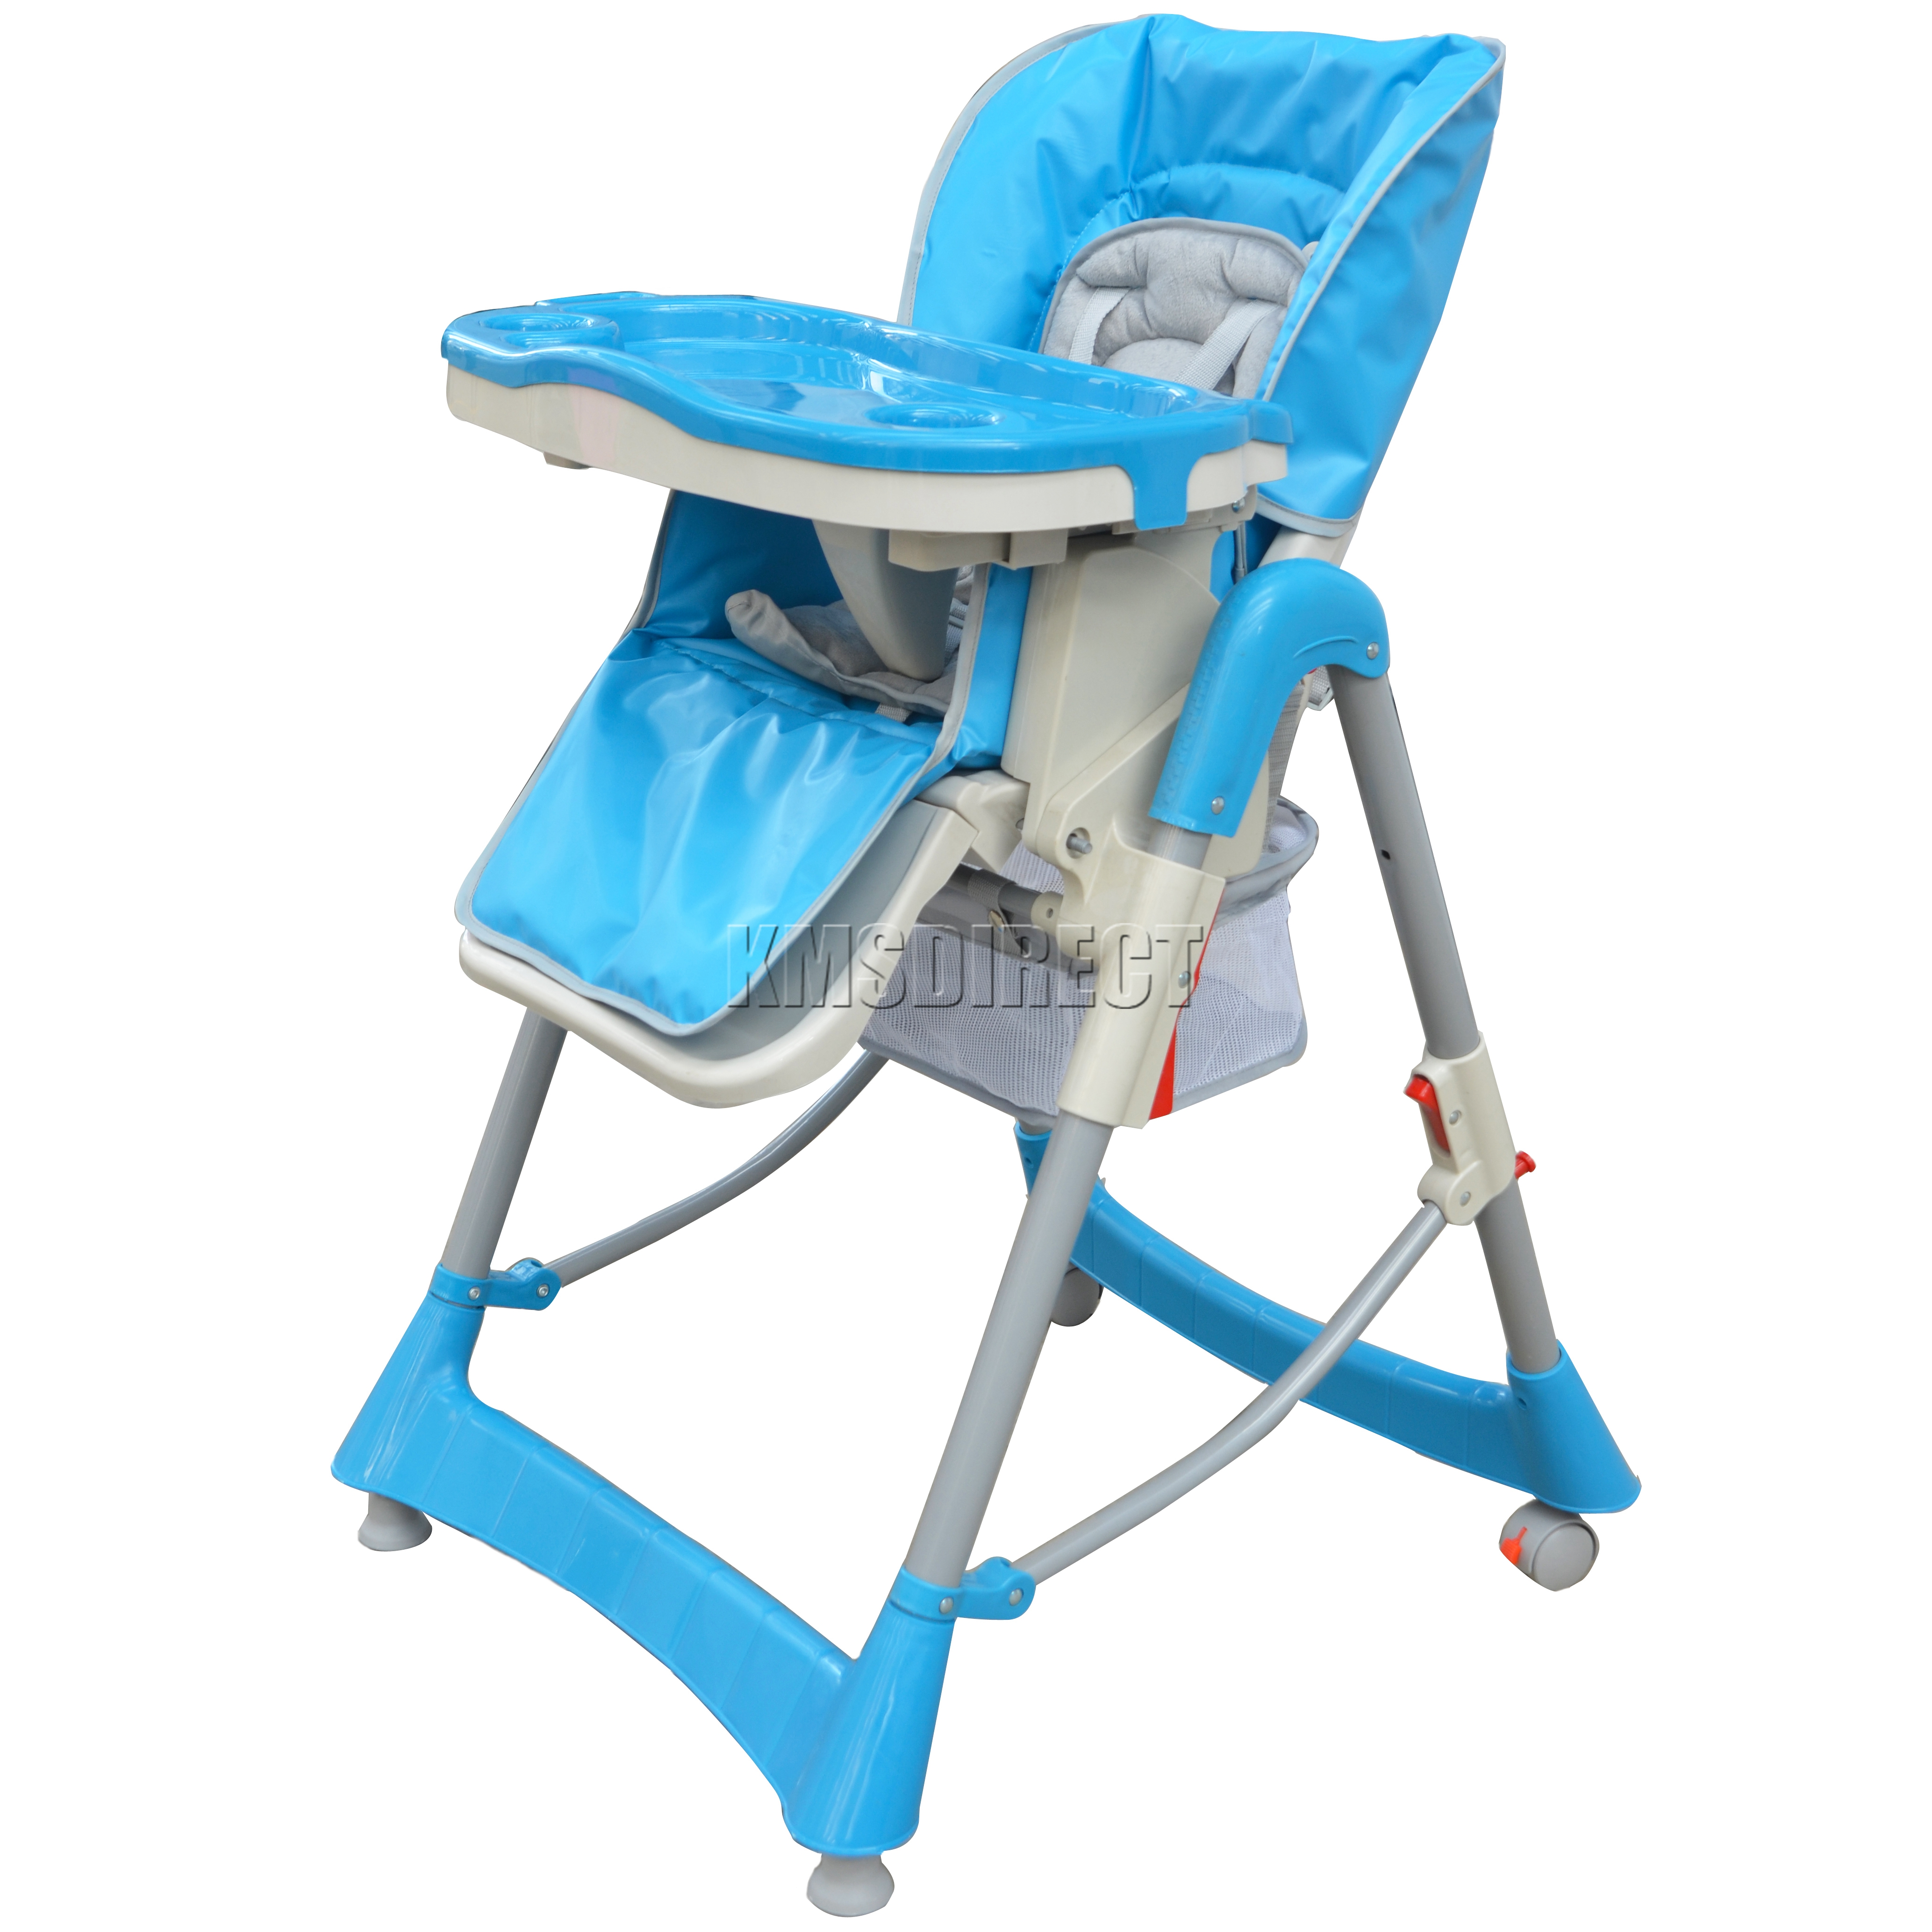 Height Adjustable Baby High Chair Recline Highchair Feeding Seat. heightadjustablebabyhighchairreclinehighchairfeeding  sc 1 st  p3mil.com & reclining high chair hauck sit n relax baby / childs high chair ... islam-shia.org